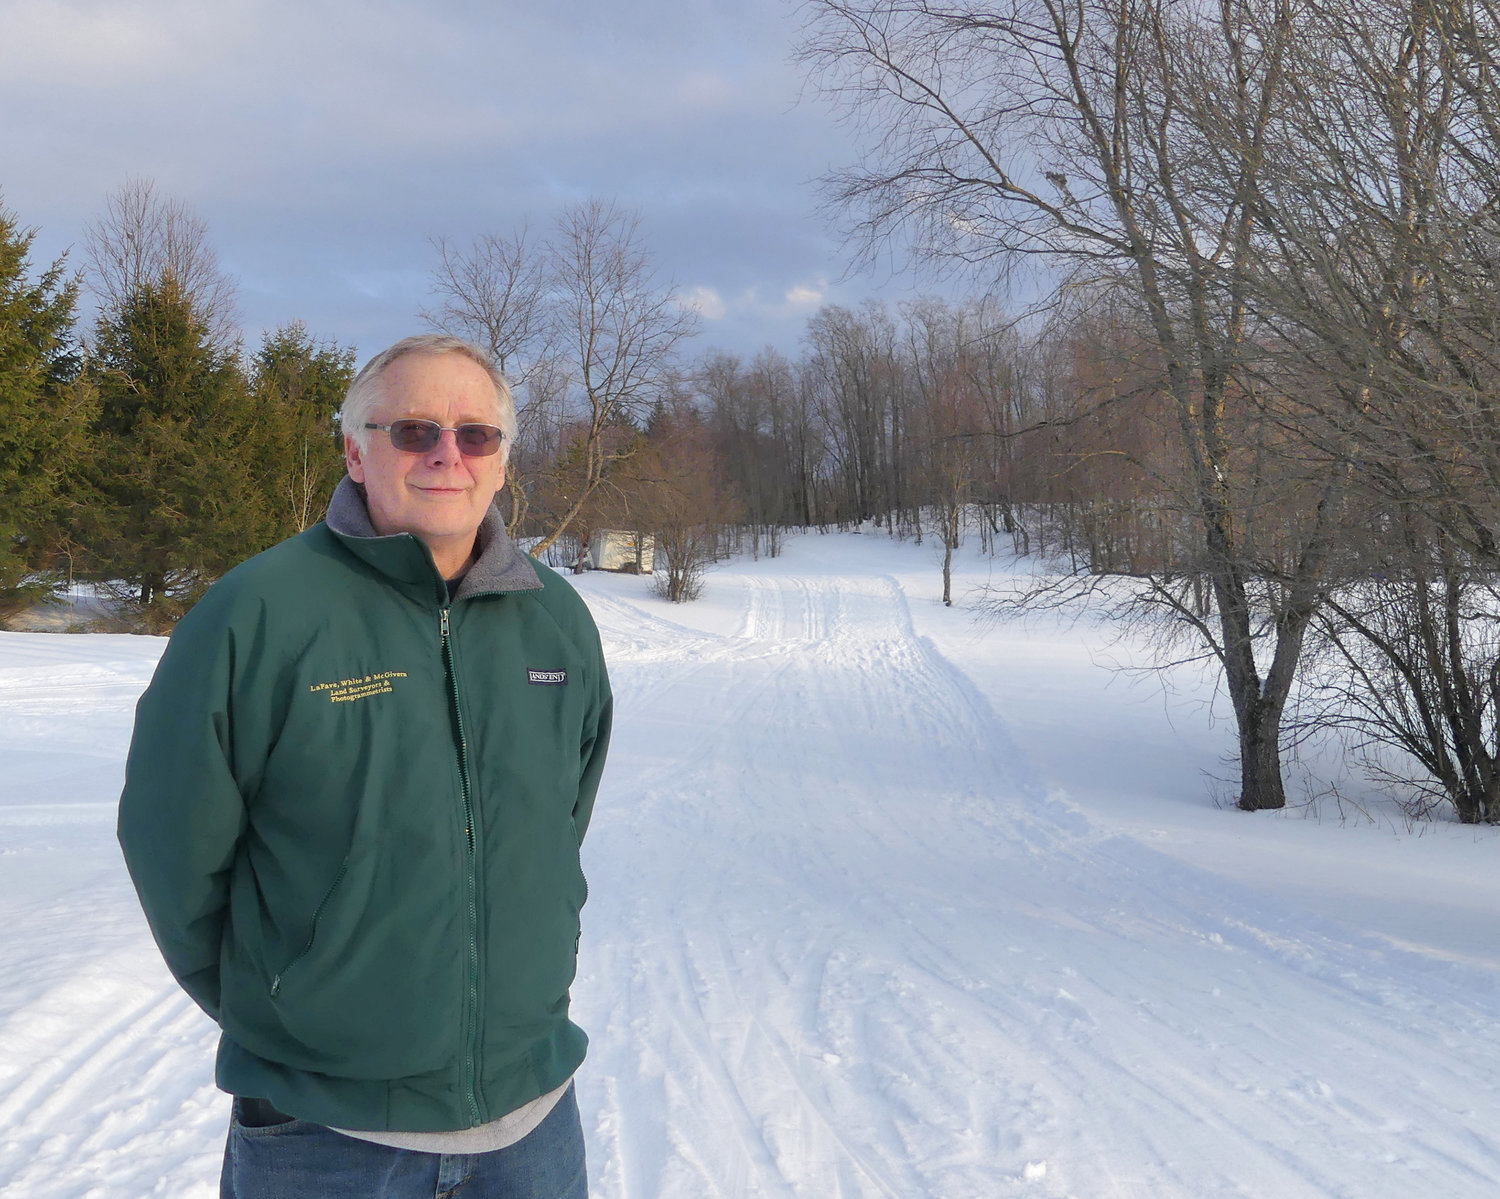 TRAILS FOR SALE — Hugh Quinn poses on a trail near the lodge at Osceola-Tug Hill Cross Country Ski Center. After 39 years, he and his wife, Anna, are putting the center up for sale with plans to retire by by the end of next winter.